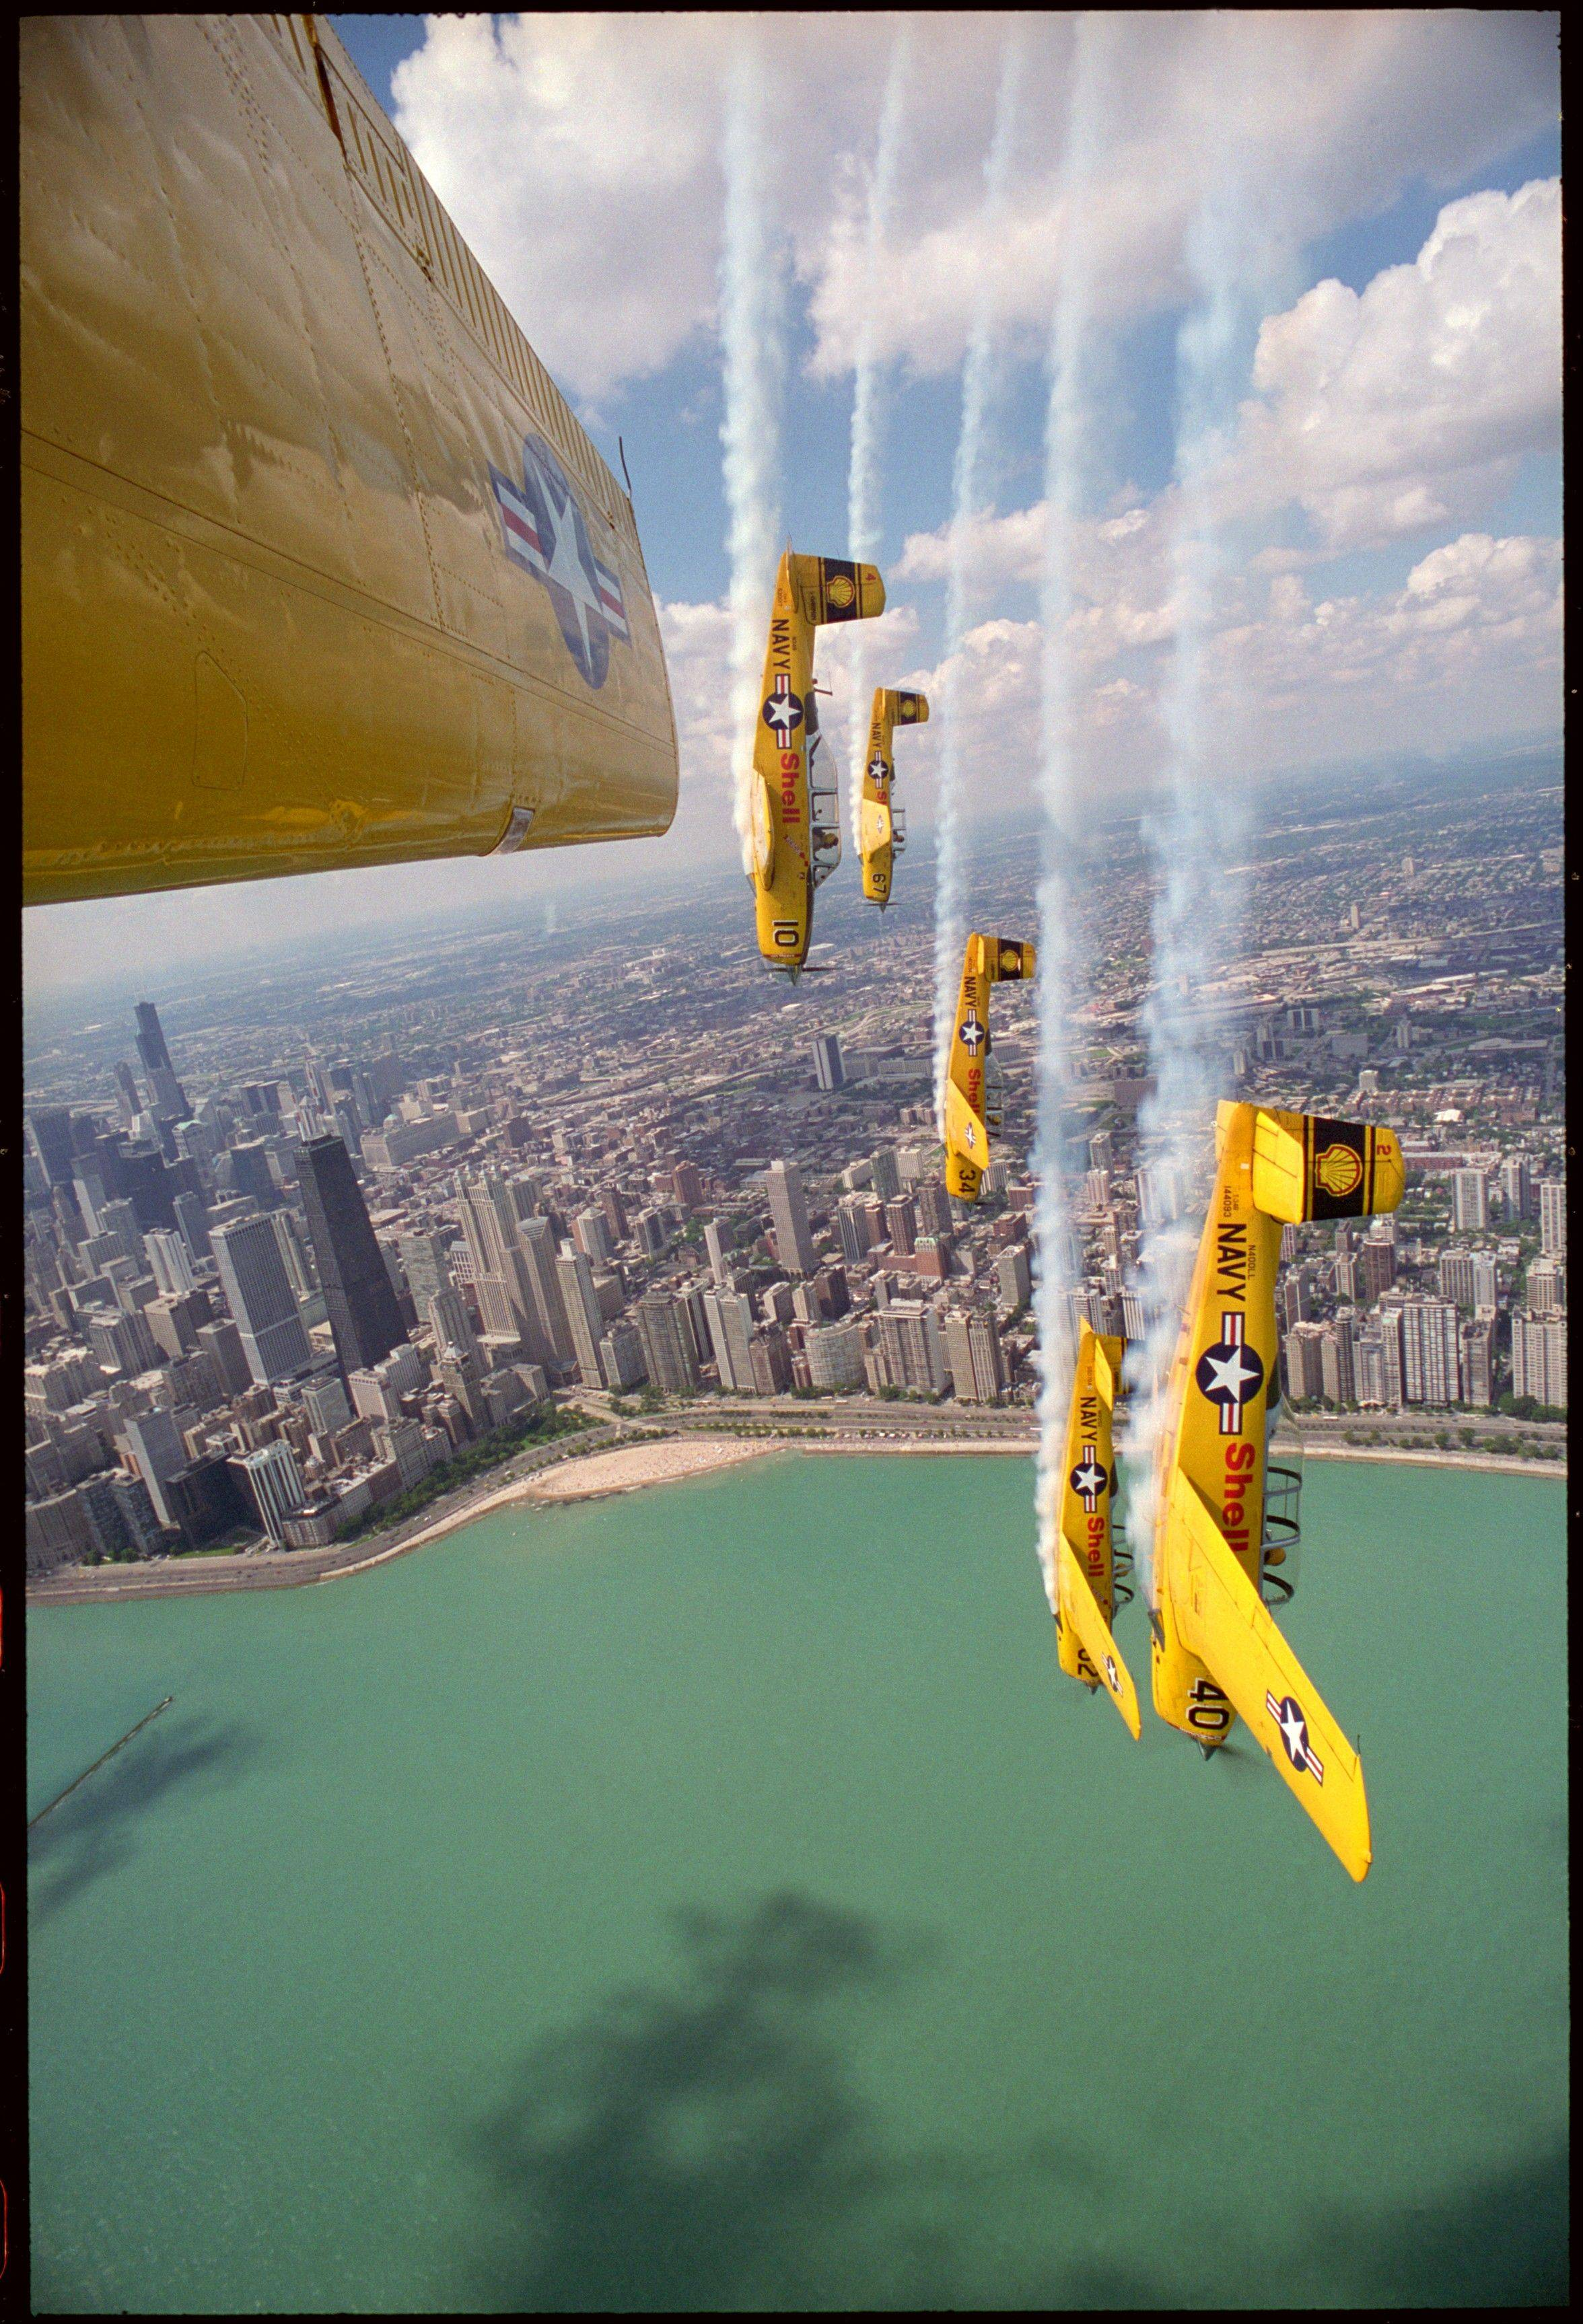 The Lima Lima Flight Team returns to the Chicago Air & Water Show this weekend.